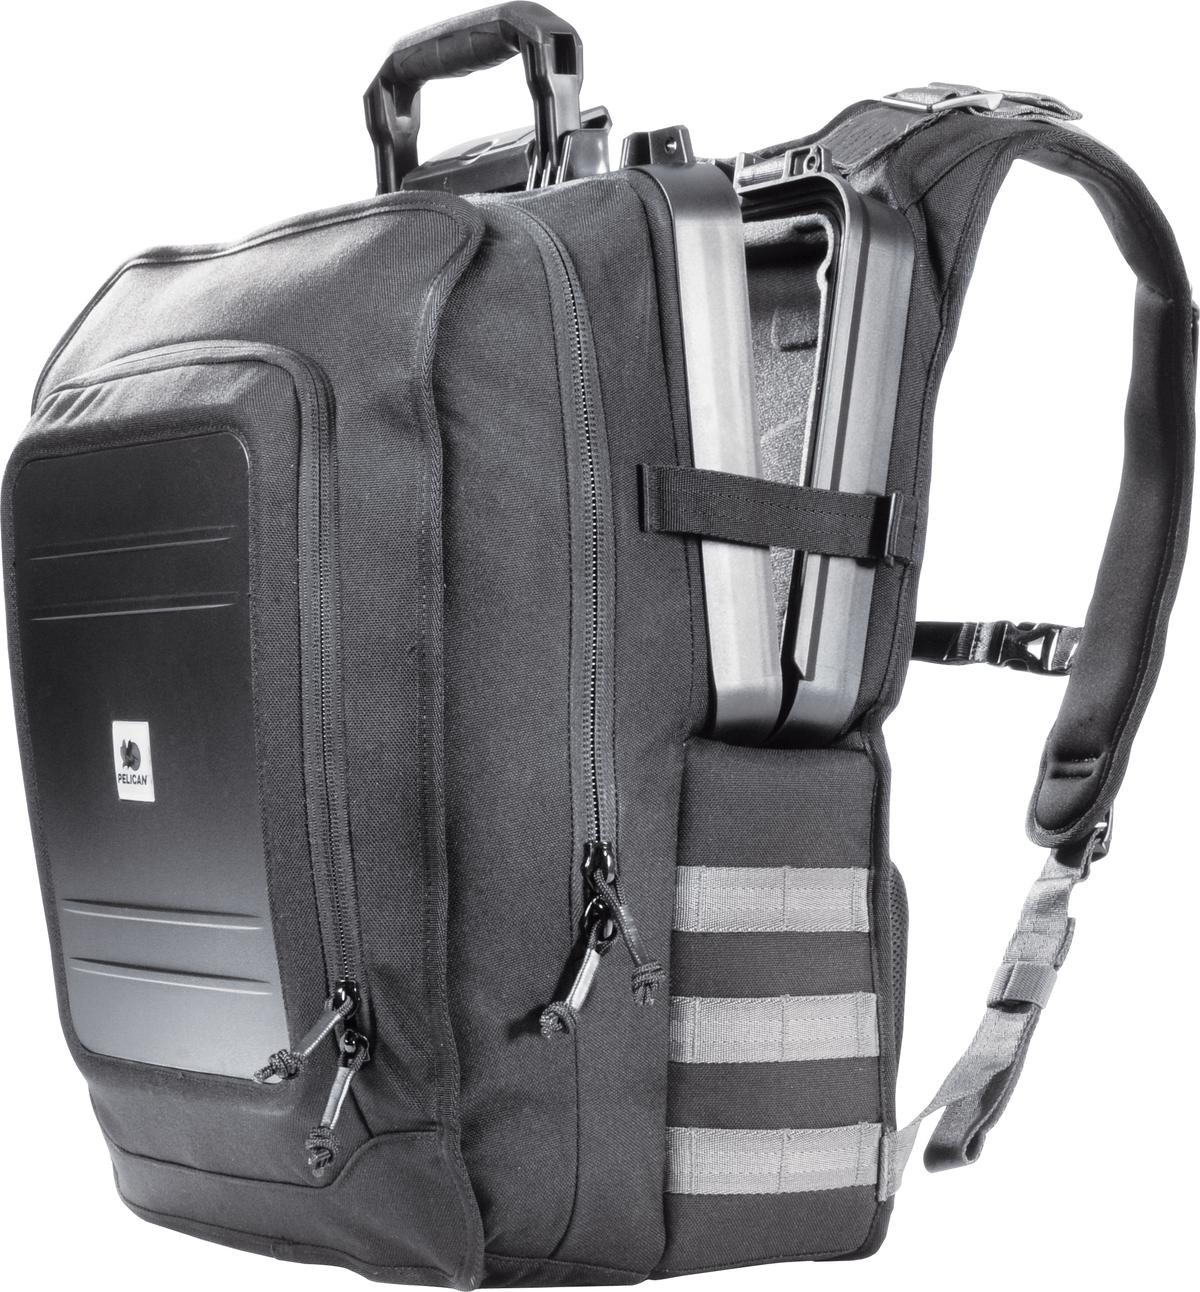 The U140 Elite Tablet Backpack protects your tablet with a hard case